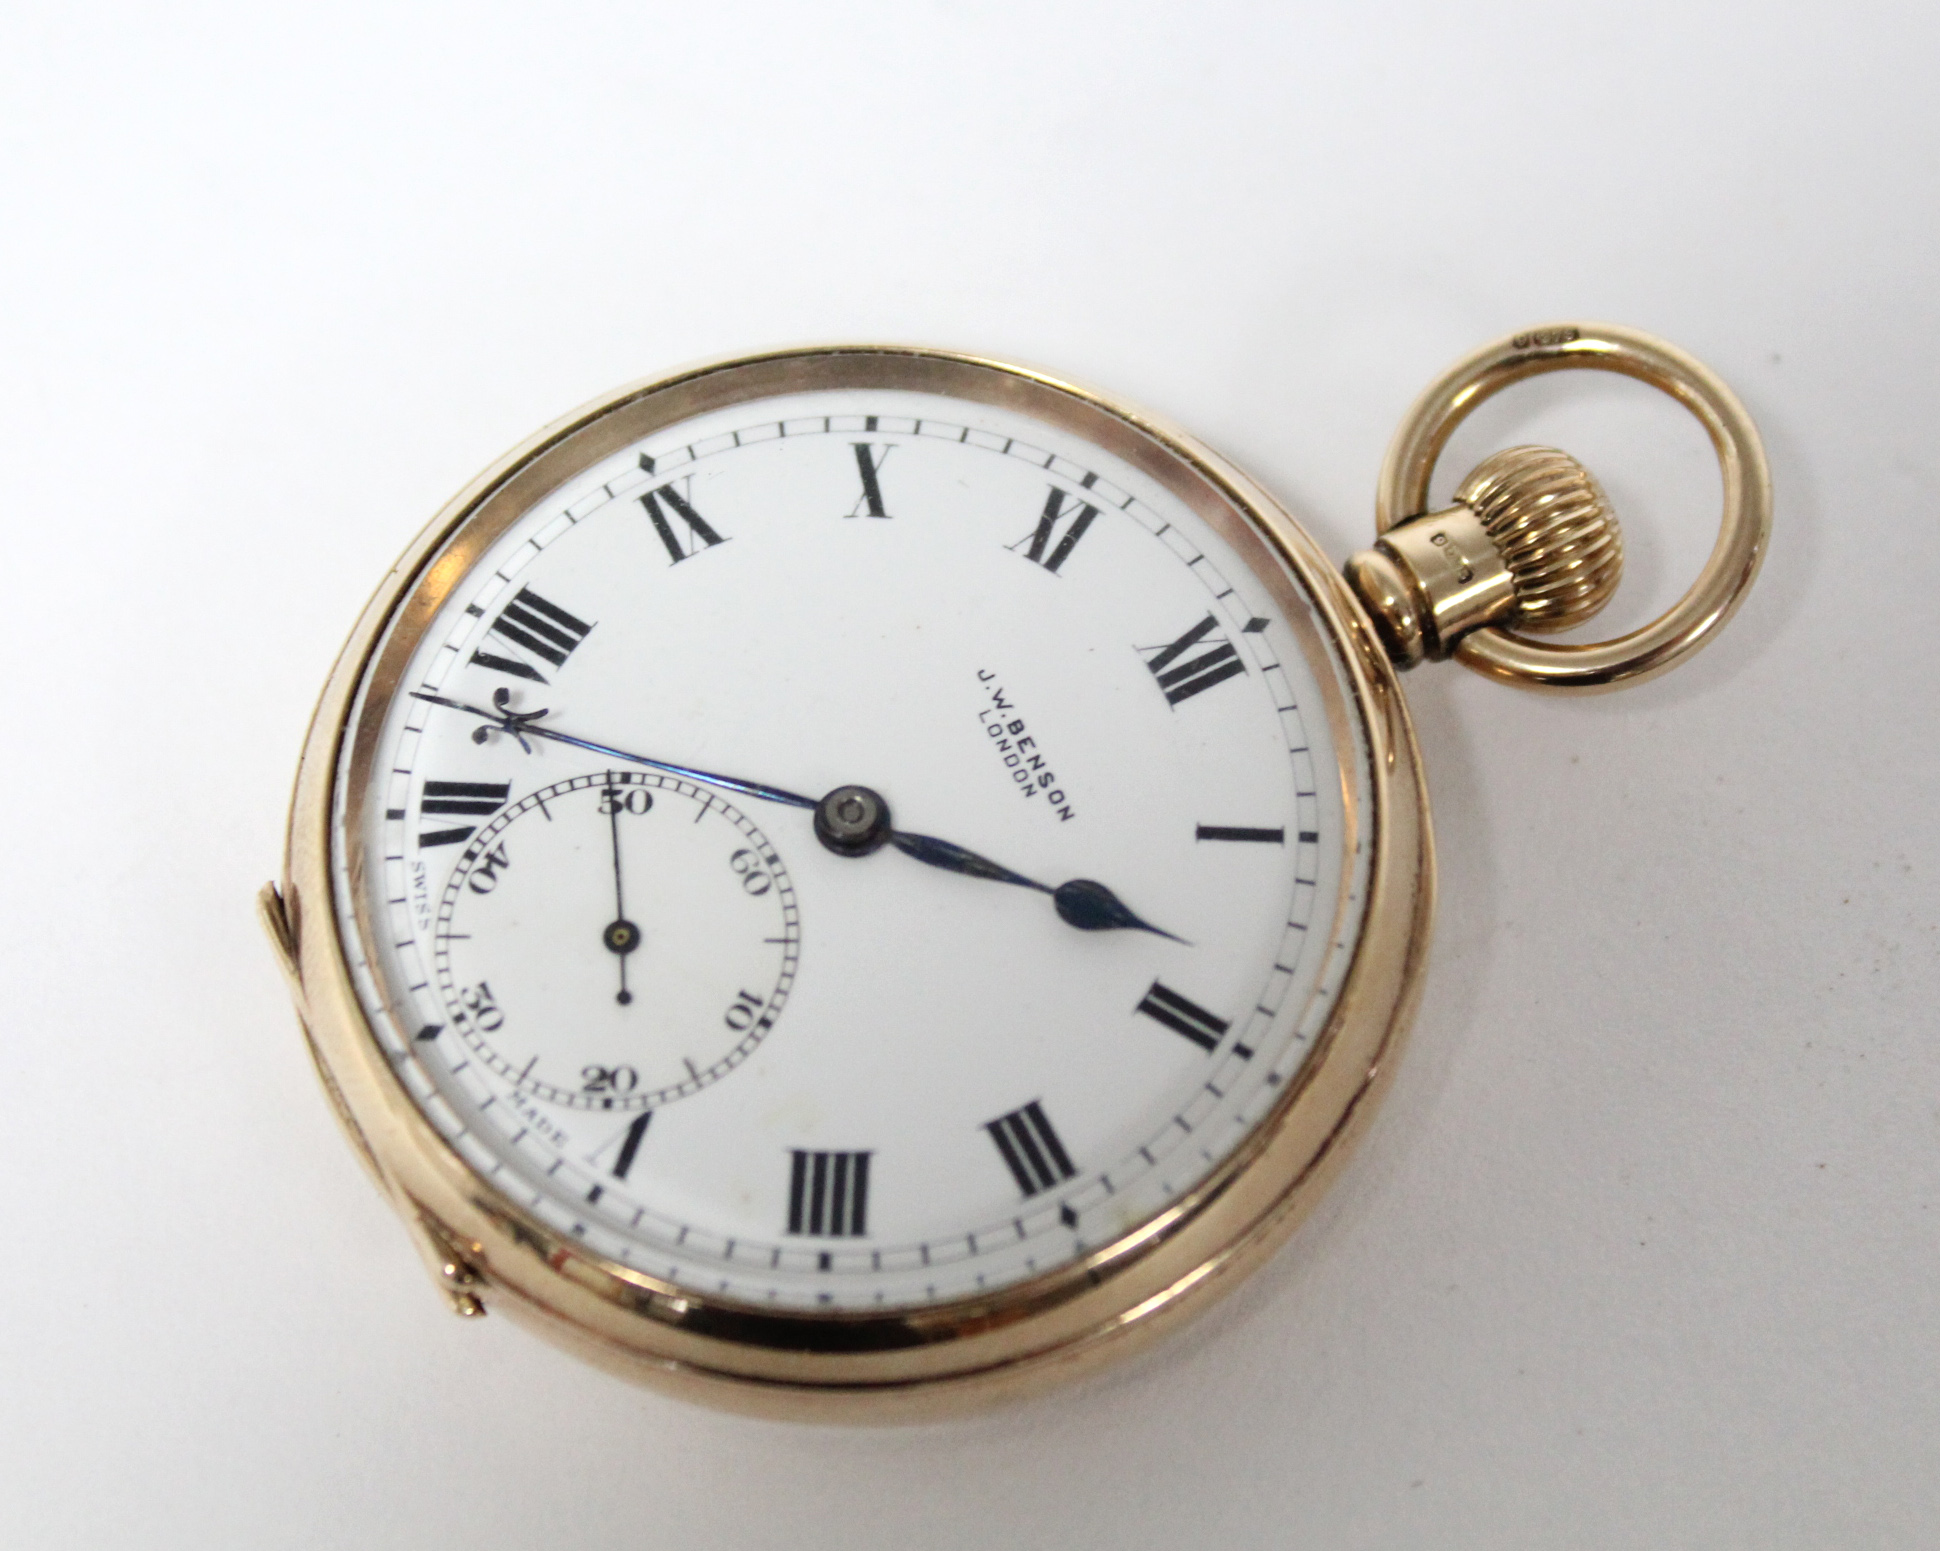 A 9ct. gold cased gent's open-face pocket watch, the white enamel dial with black roman numerals & - Image 3 of 7